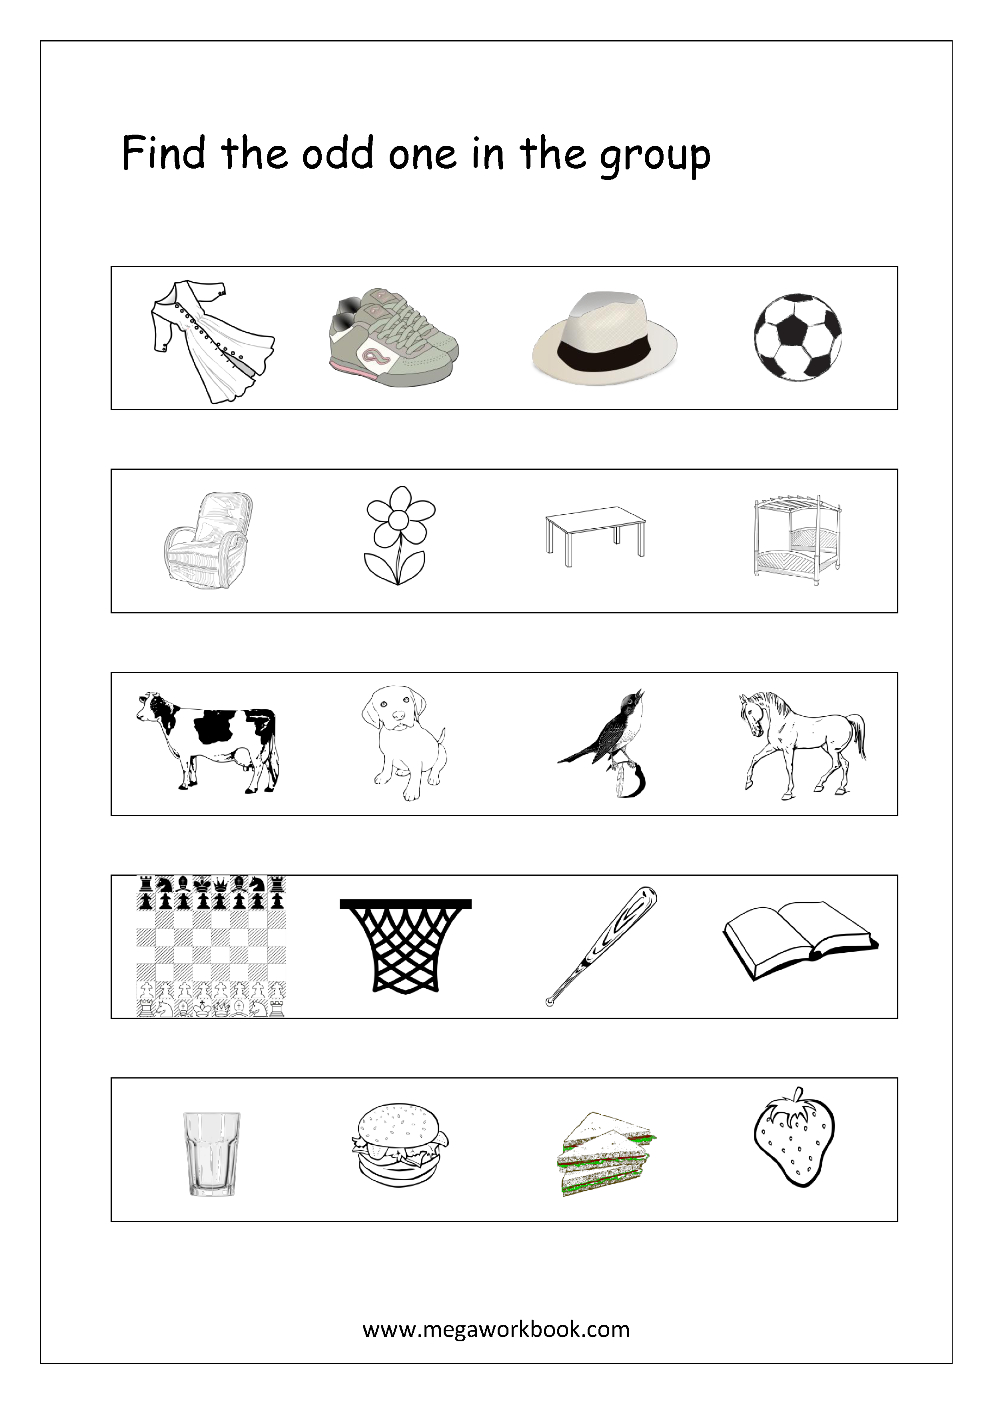 Free General Aptitude Worksheets - Odd One Out - Megaworkbook - Free Printable Science Lessons